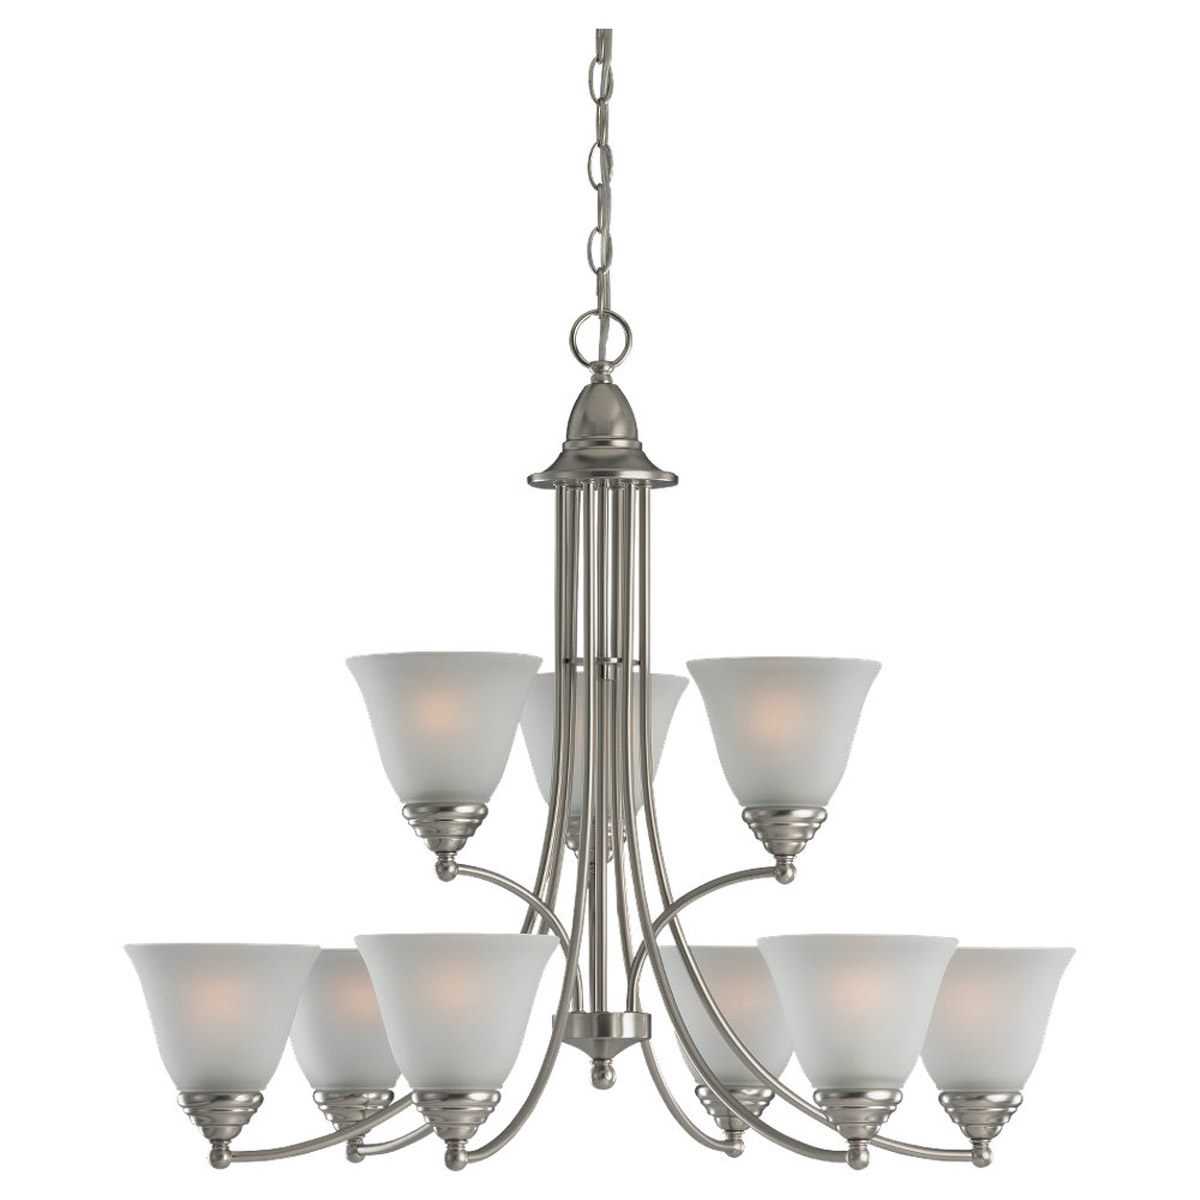 Sea Gull 31577-962 Albany 9 Light 29 inch Brushed Nickel Chandelier Ceiling Light photo